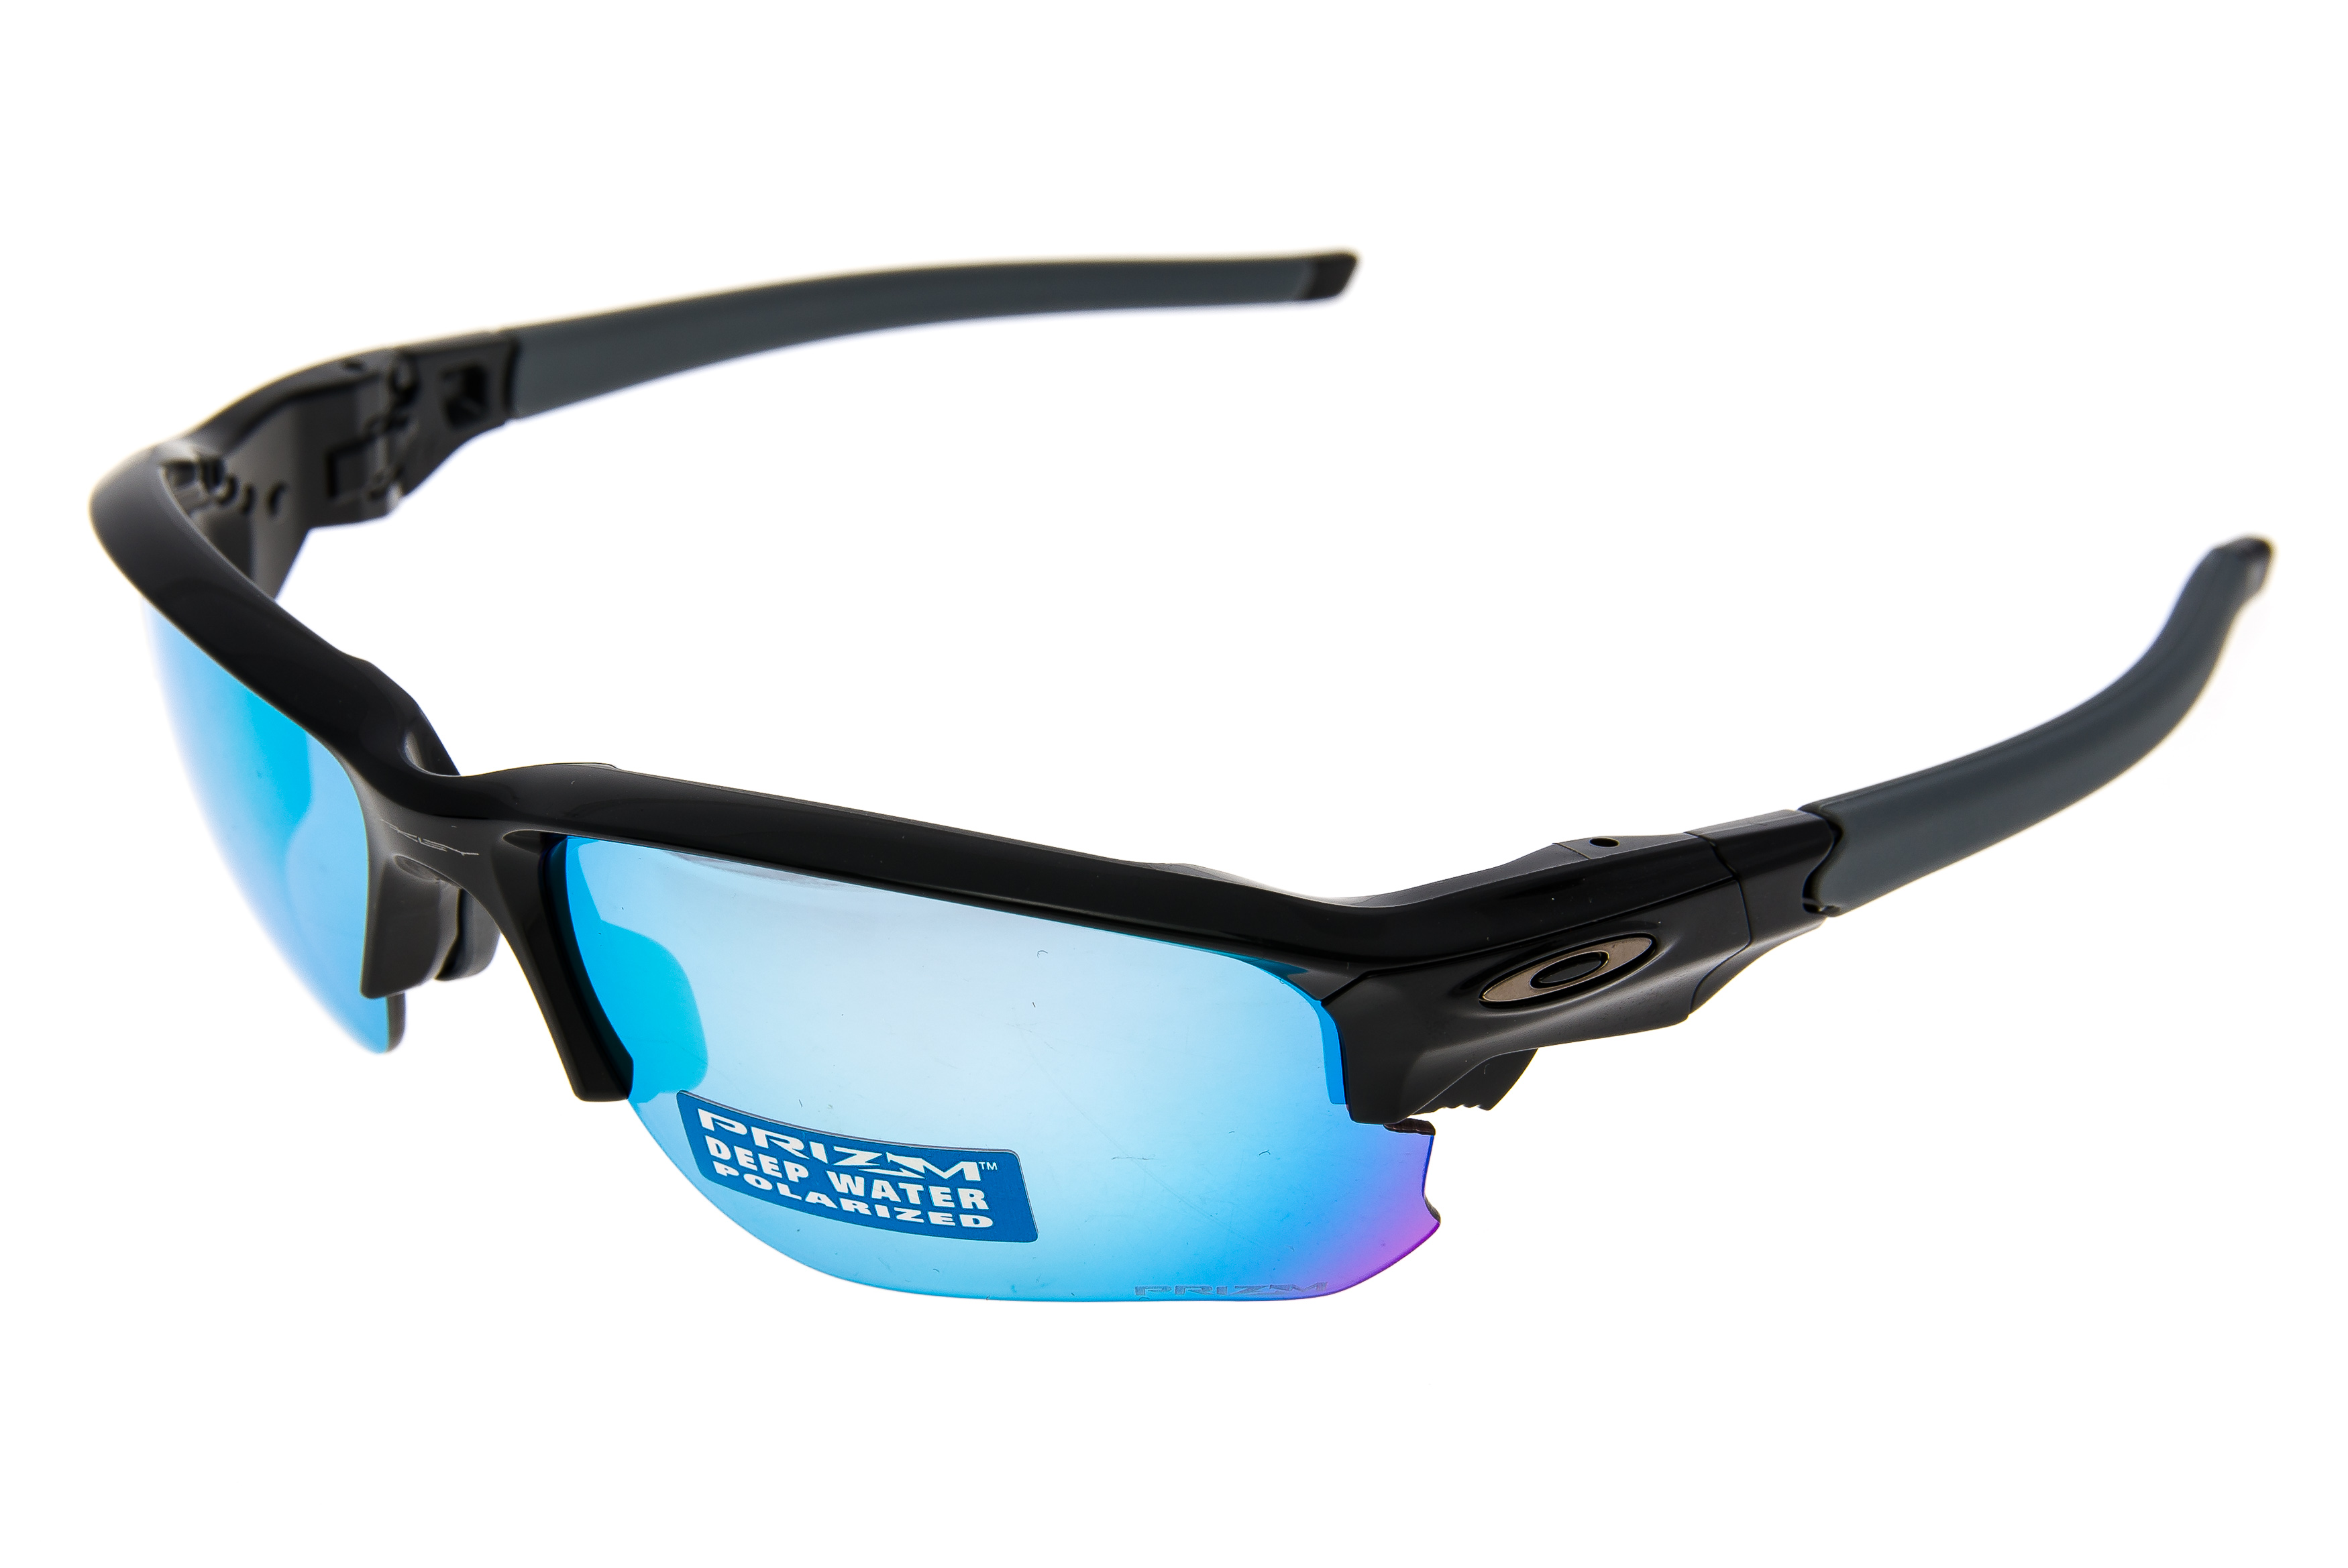 82d2a63b834 Details about Oakley Flak Draft Sunglasses Polished Black Frame Prizm  Polarized - Excellent